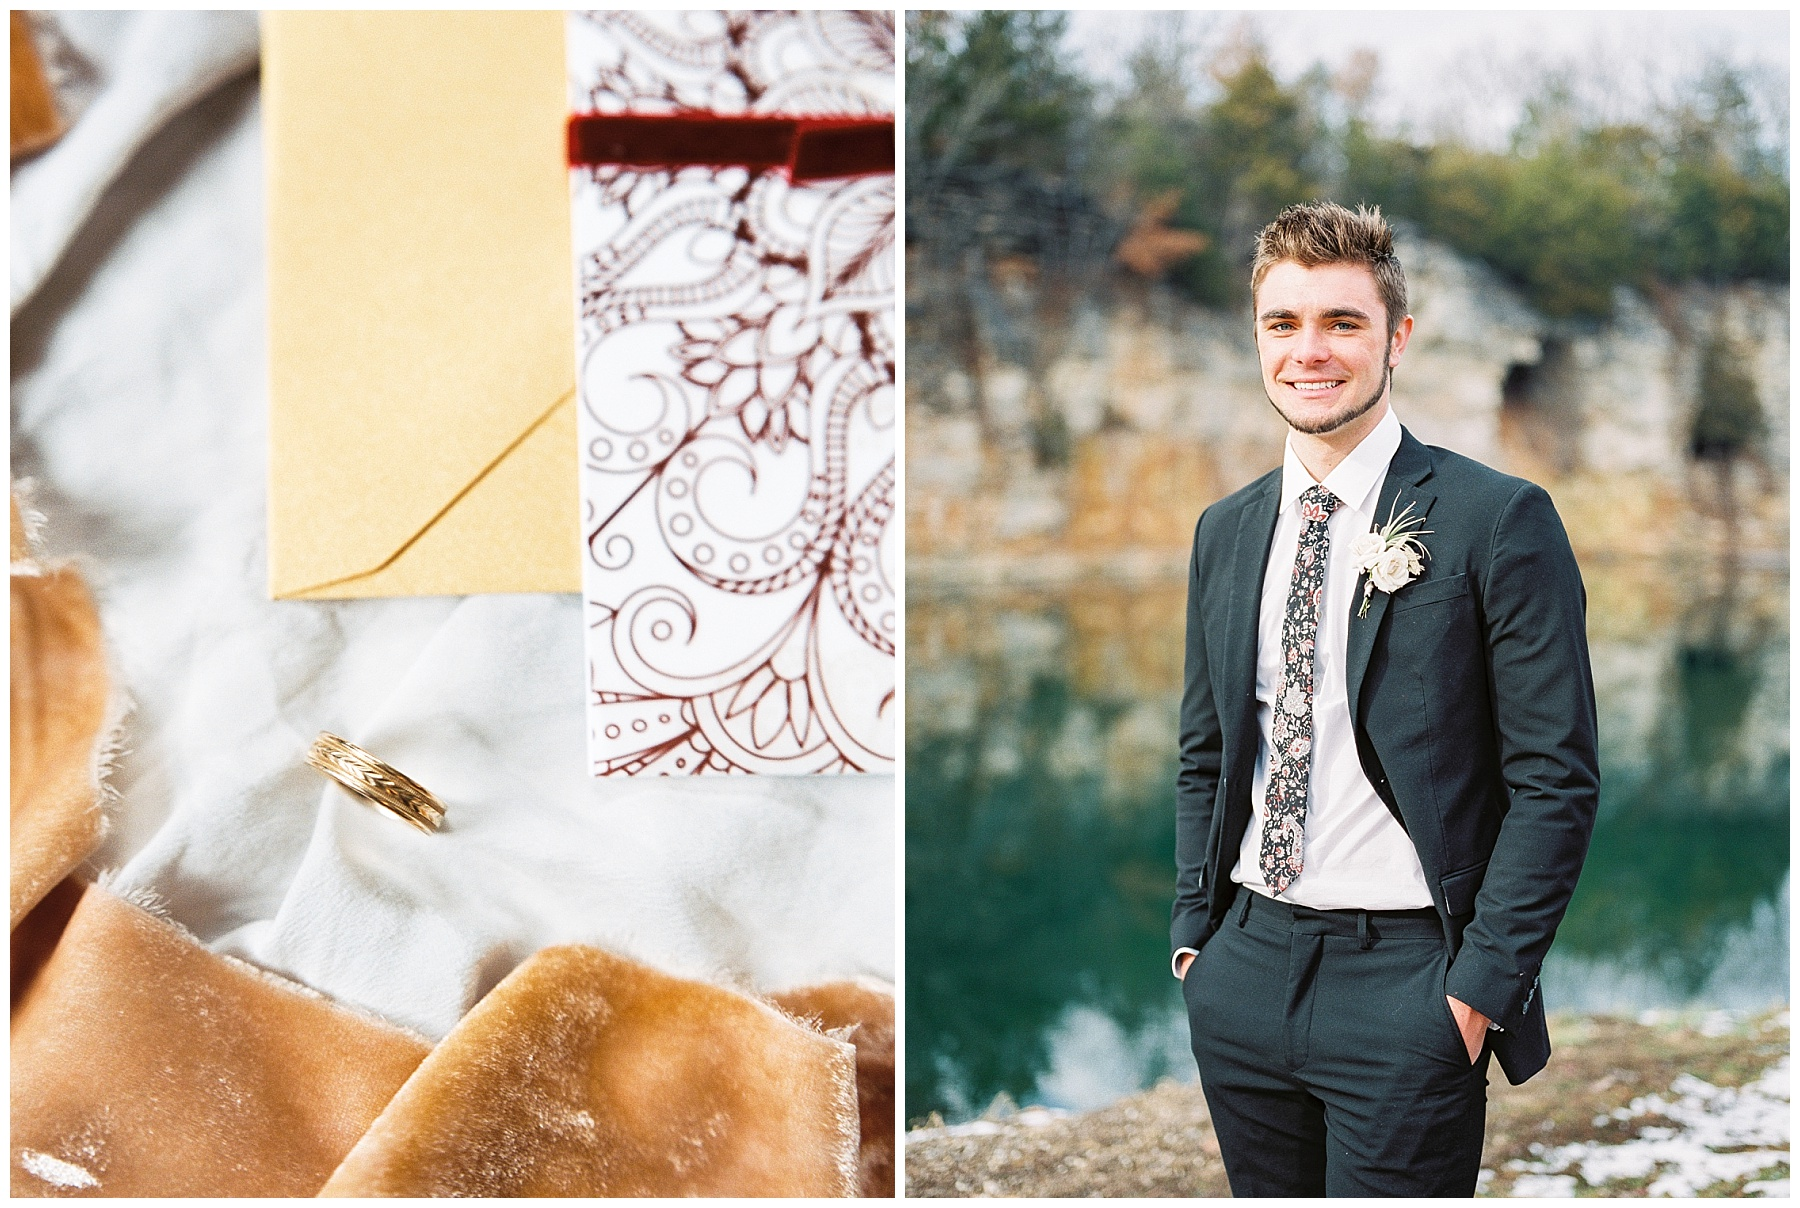 Snowy Winter Wedding at Wildcliff Events Lake With Earthy Jewel Tones and Organic Refined Style by Kelsi Kliethermes Photography Kansas City Missouri Wedding Photographer_0088.jpg